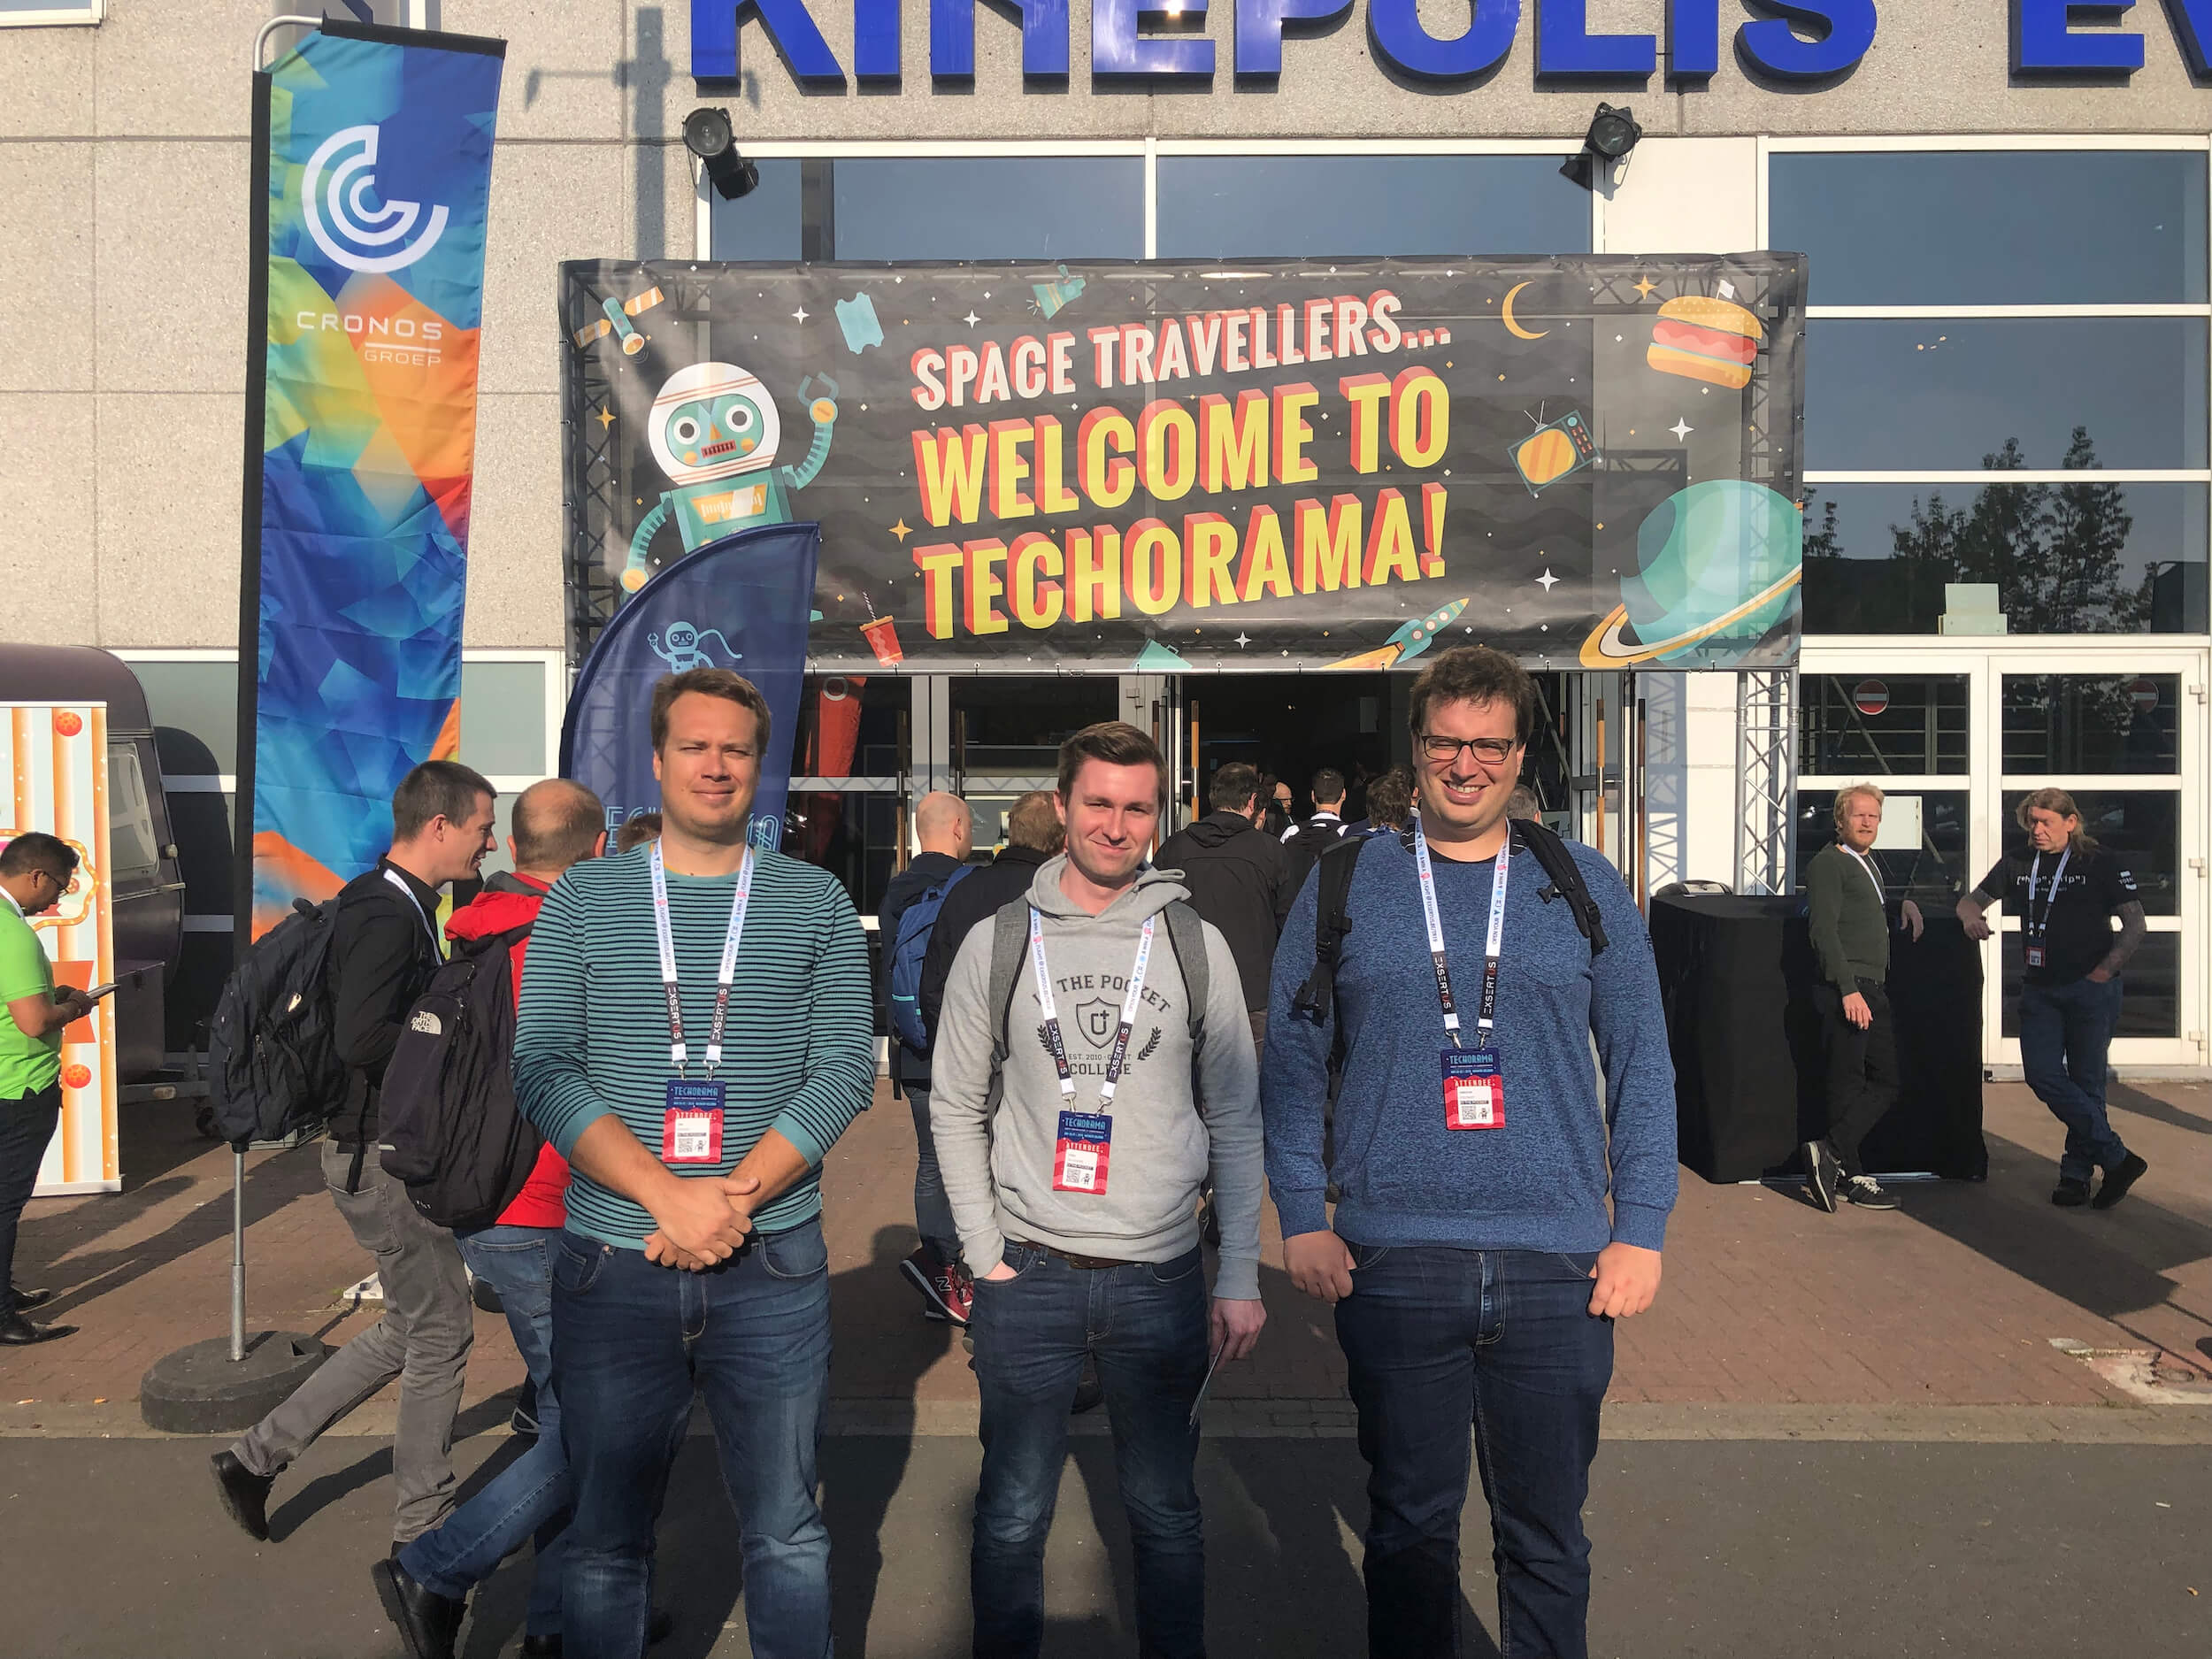 Tim, Yves and Kristof in front of the Techorama entrance